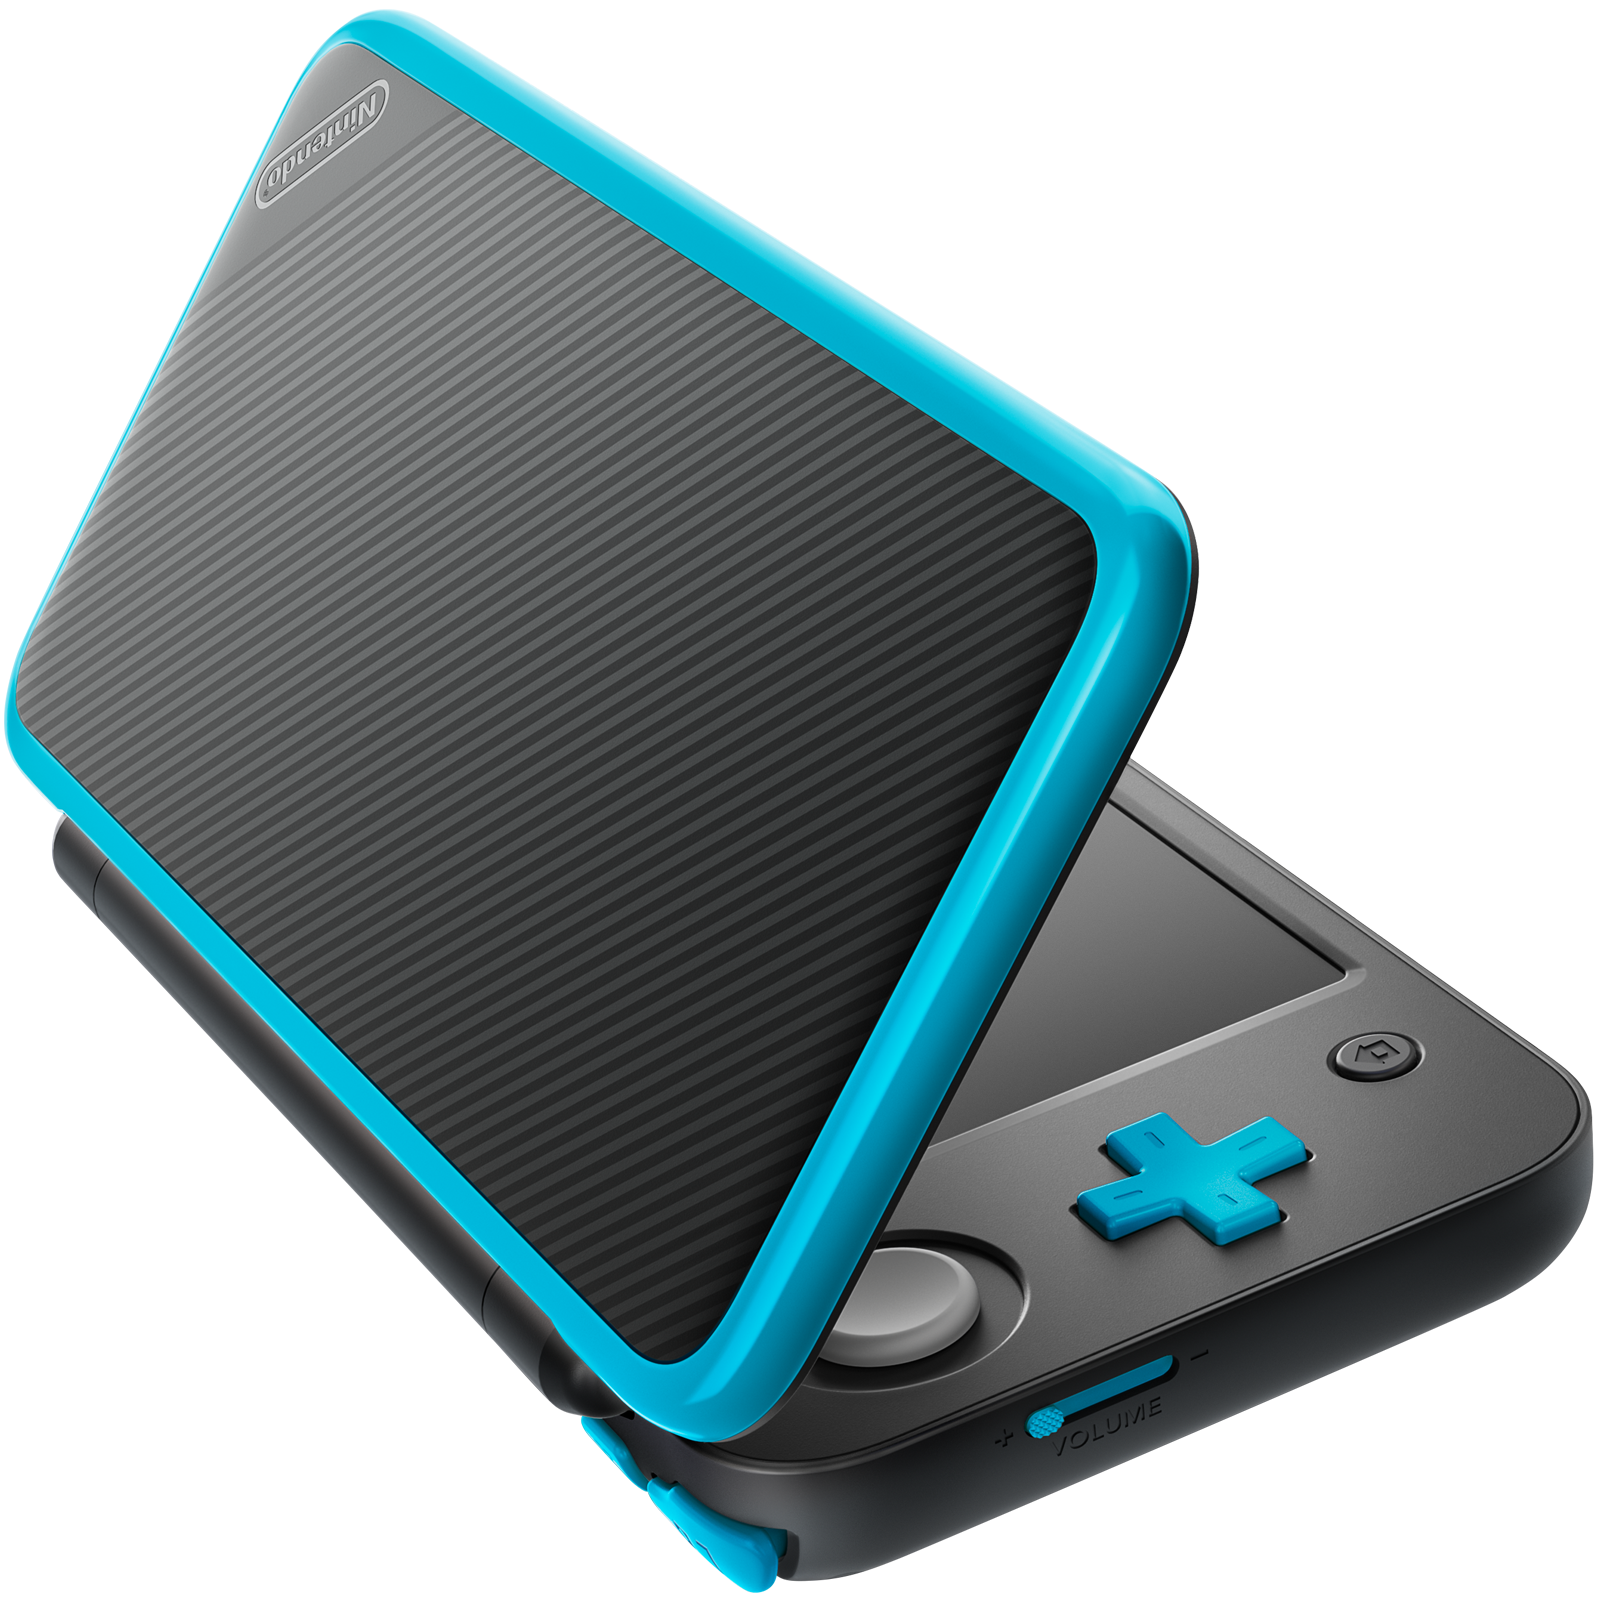 New Nintendo 2DS XL (Black + Turquoise) with its original stylus pen 2